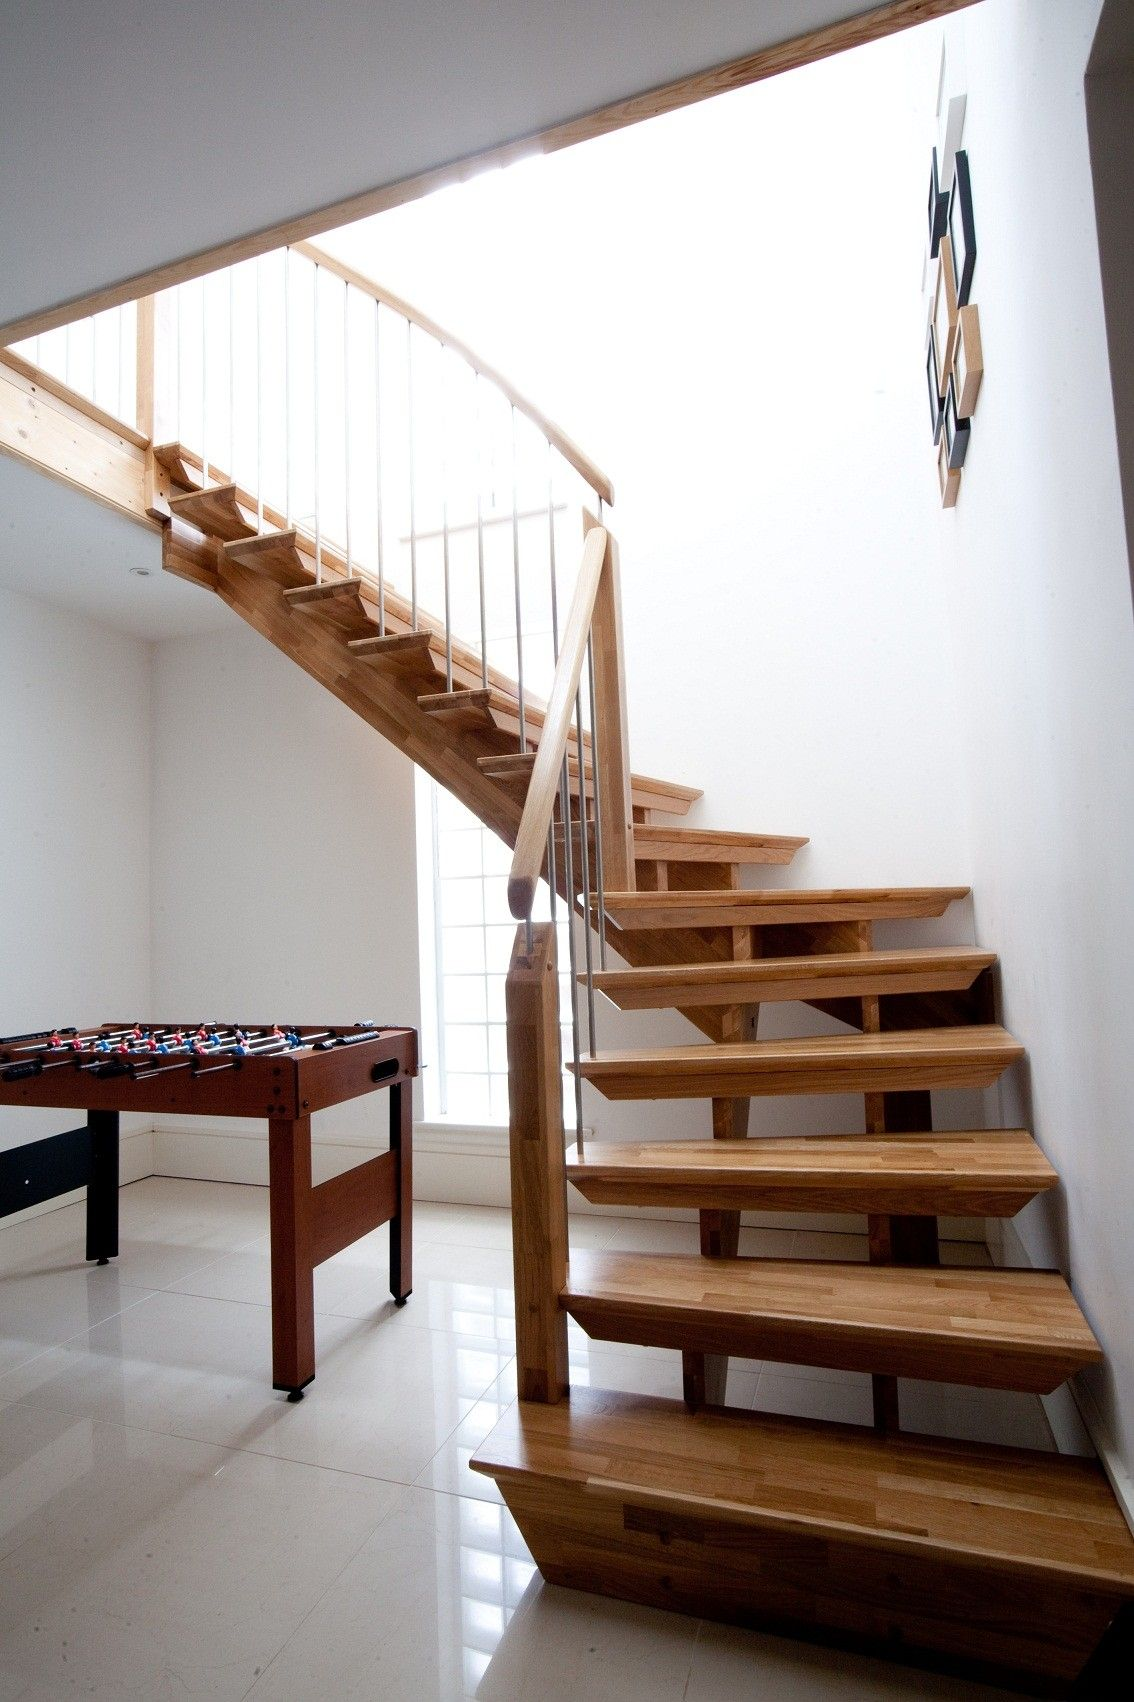 Awesome modern simple staircase design ideas with varnished wooden tread and stringer beam - Modern interior design with spiral stairs contemporary spiral staircase design ...